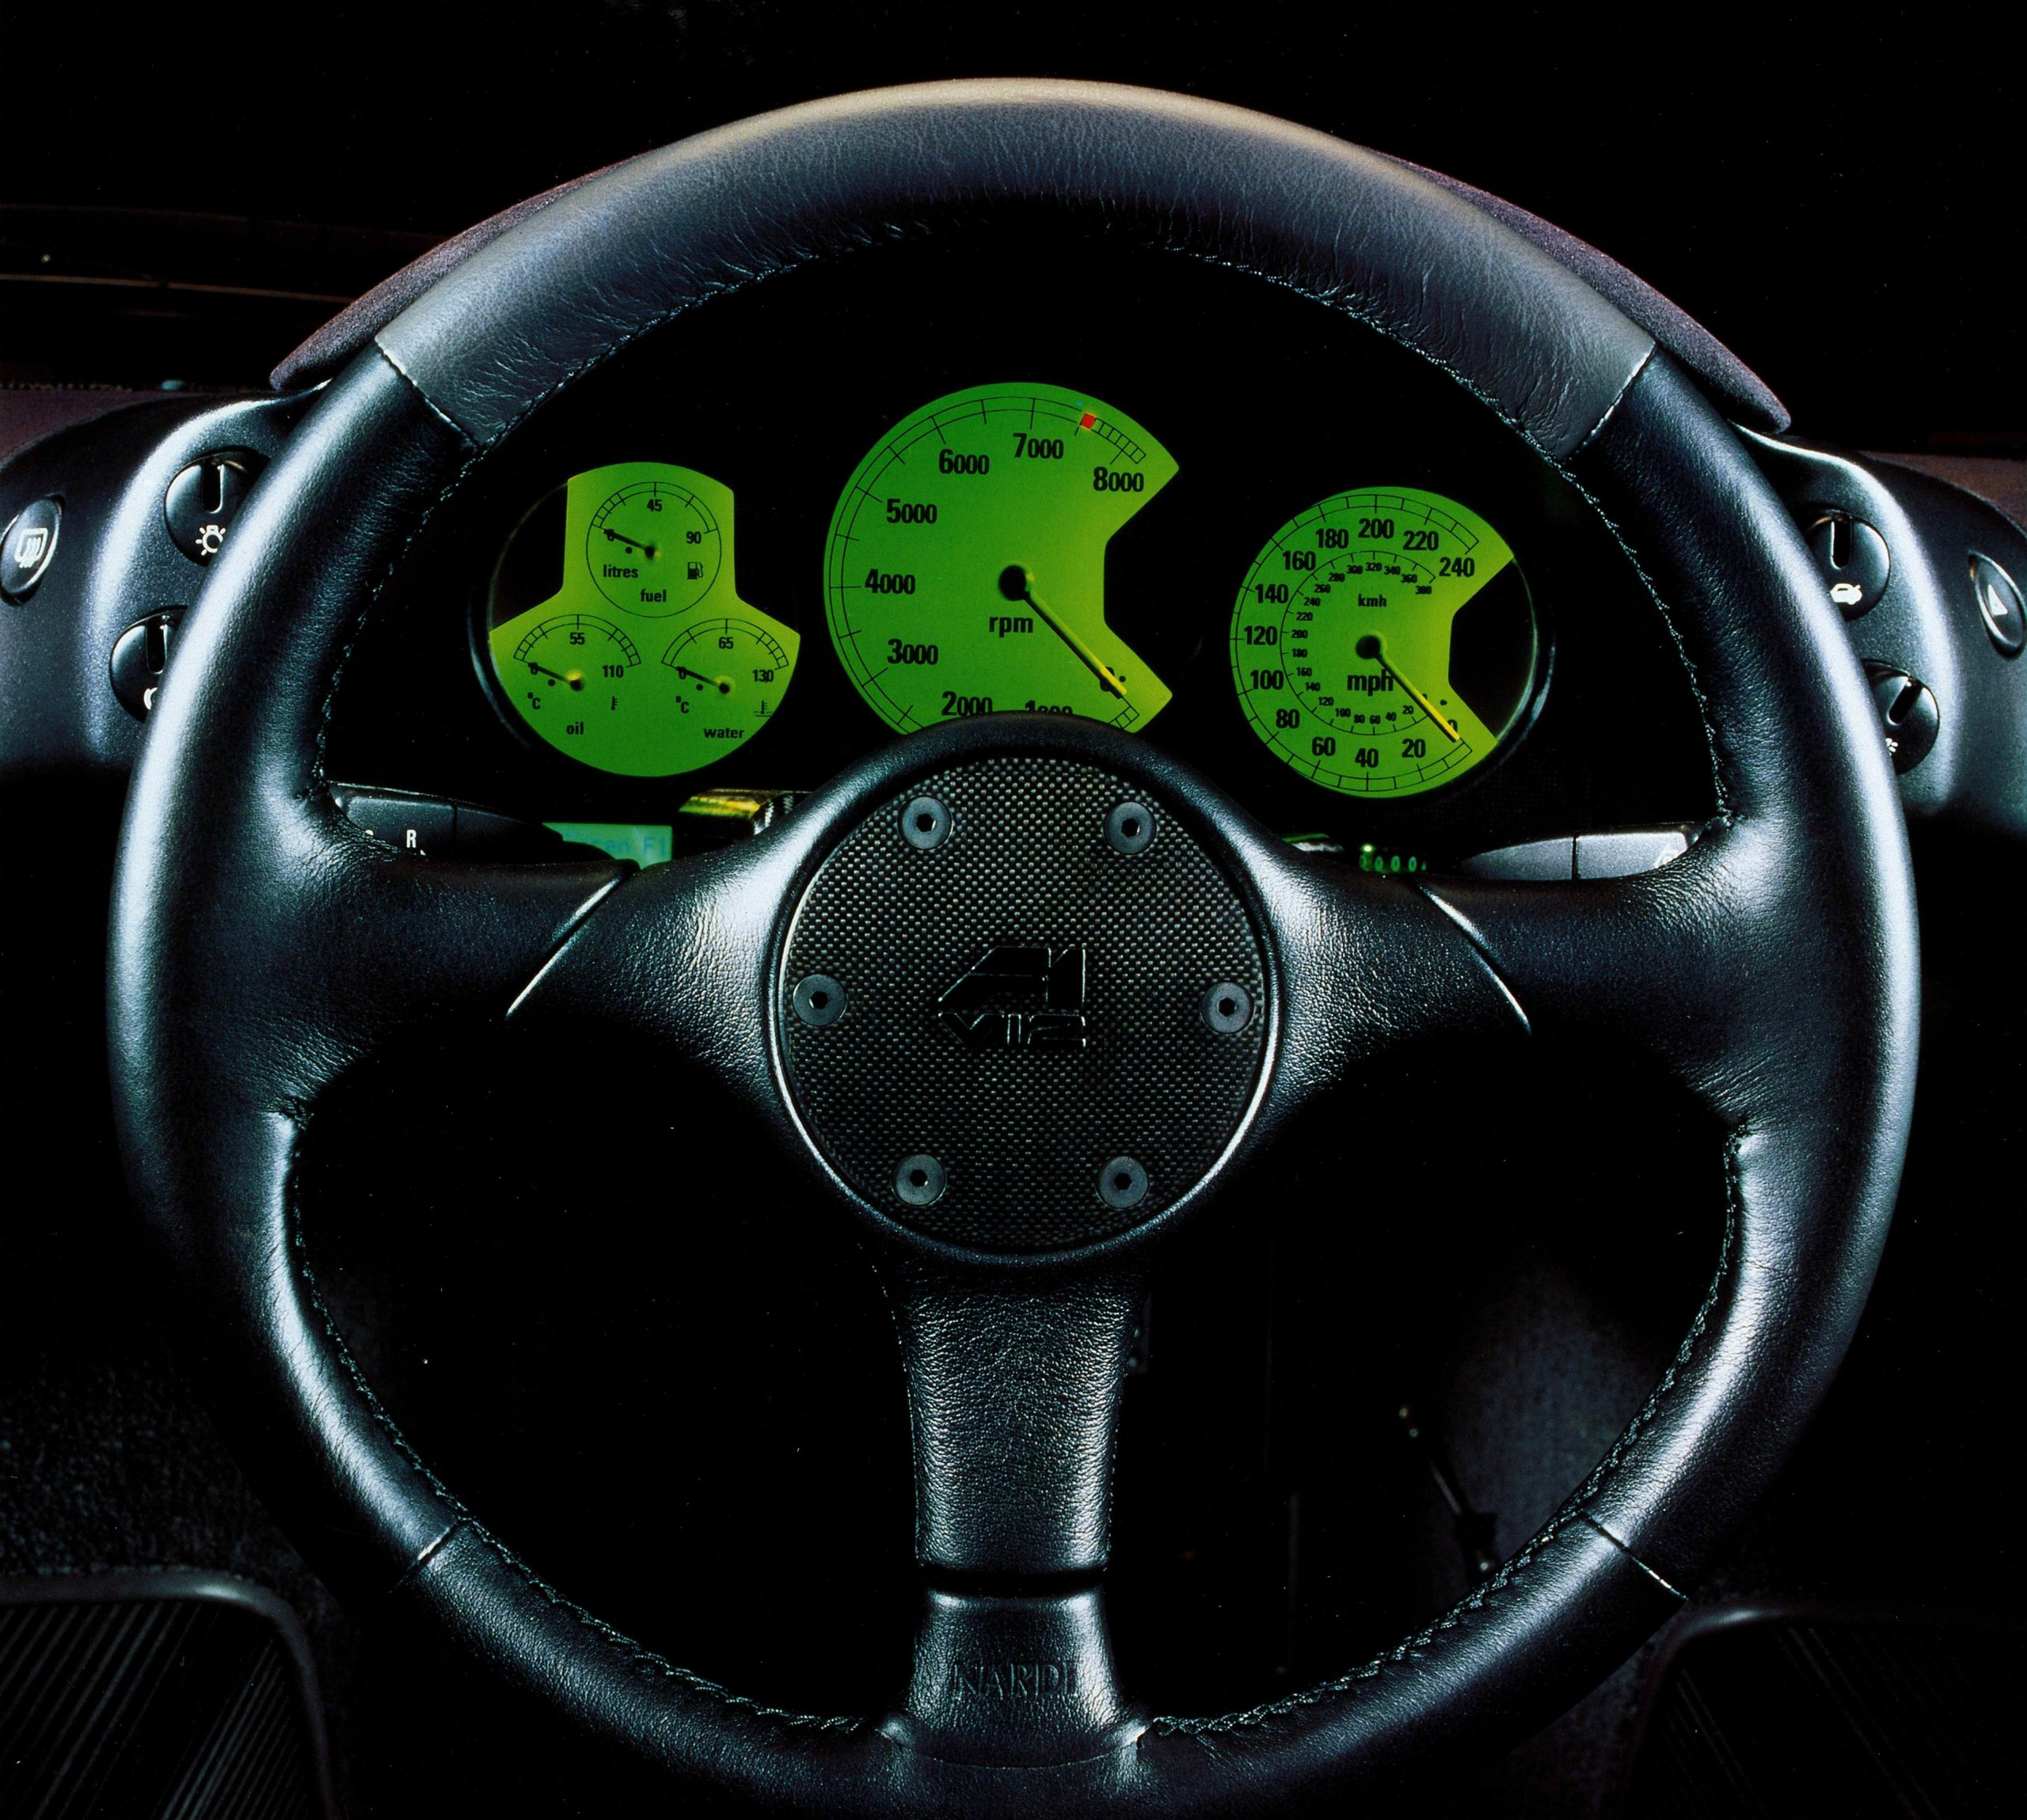 McLaren F1 front steering wheel and gauges